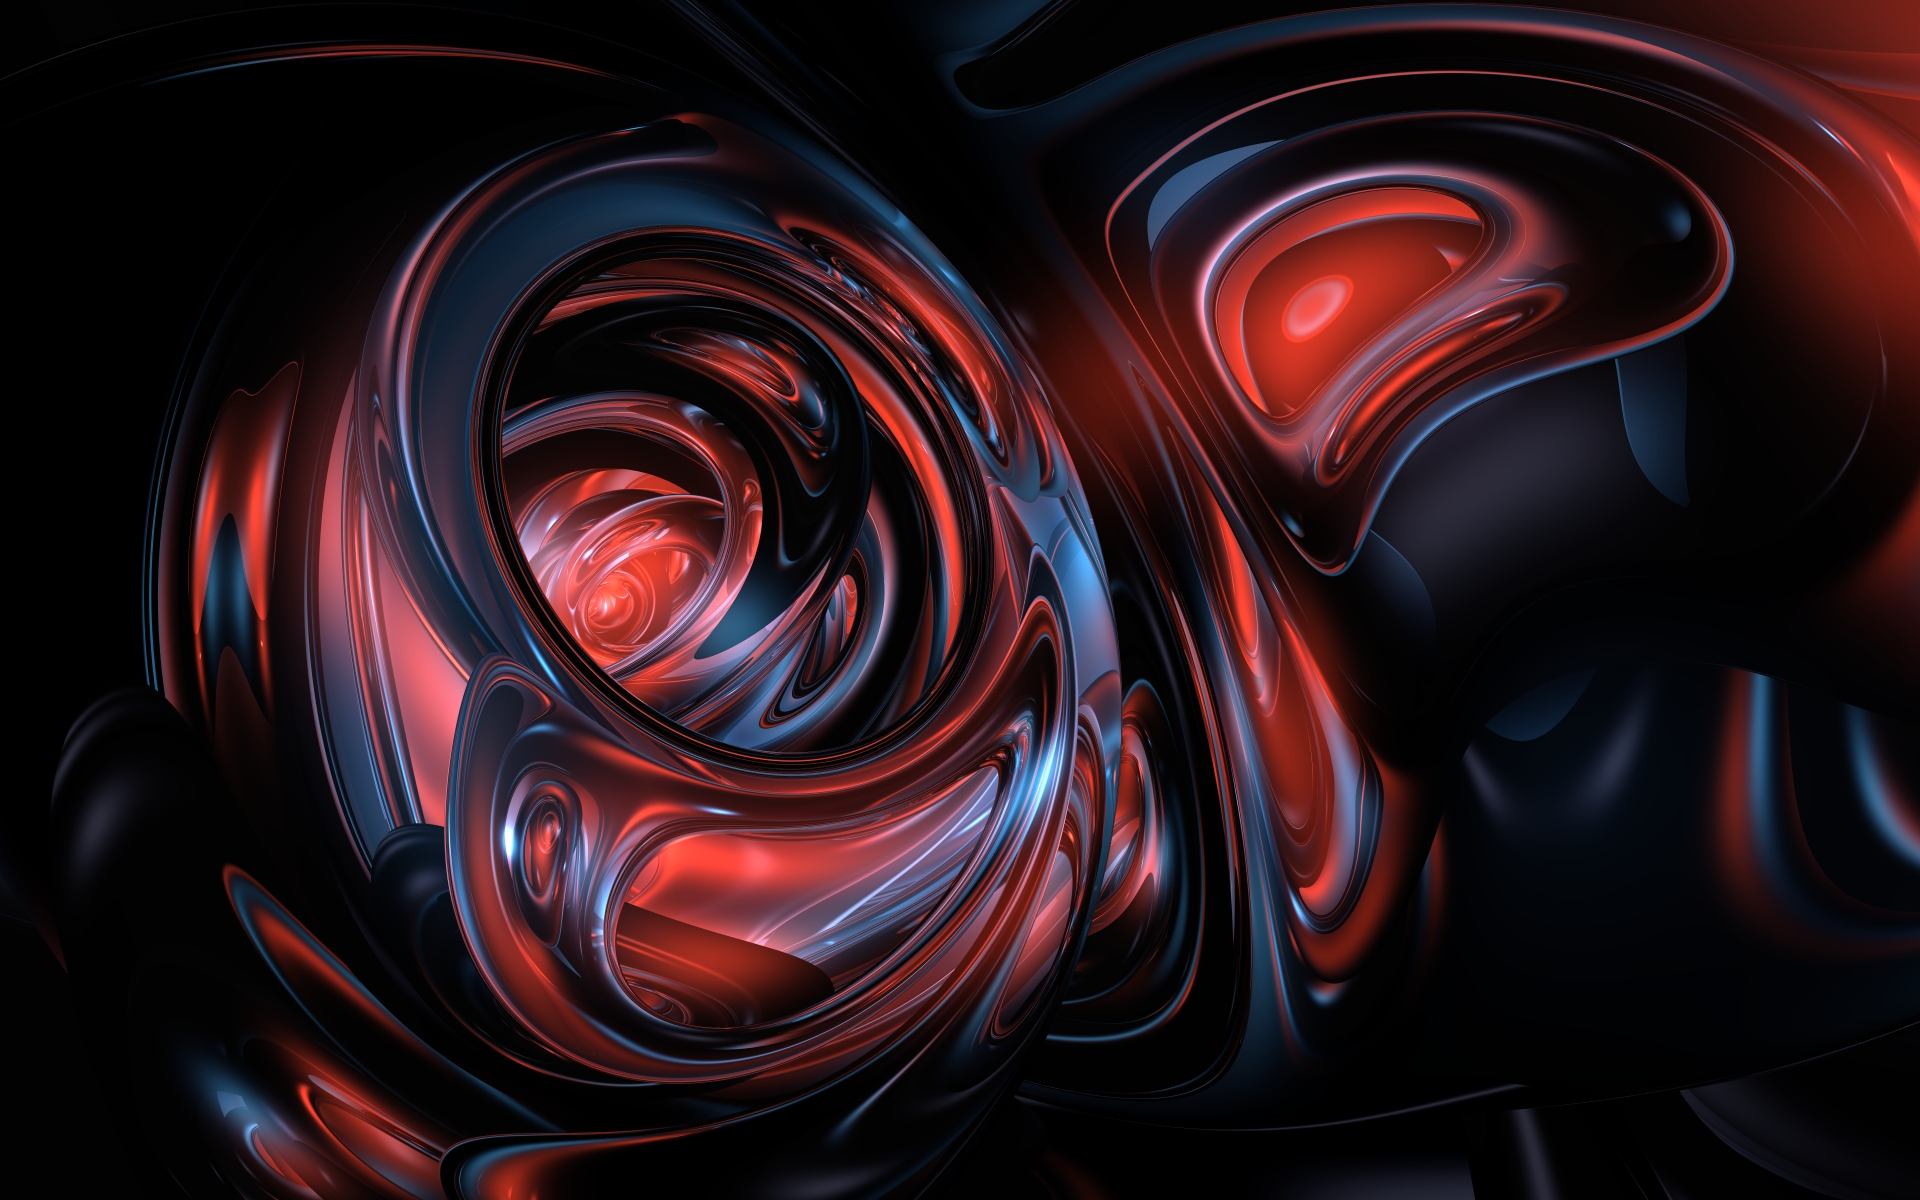 CGI - Abstract Wallpaper